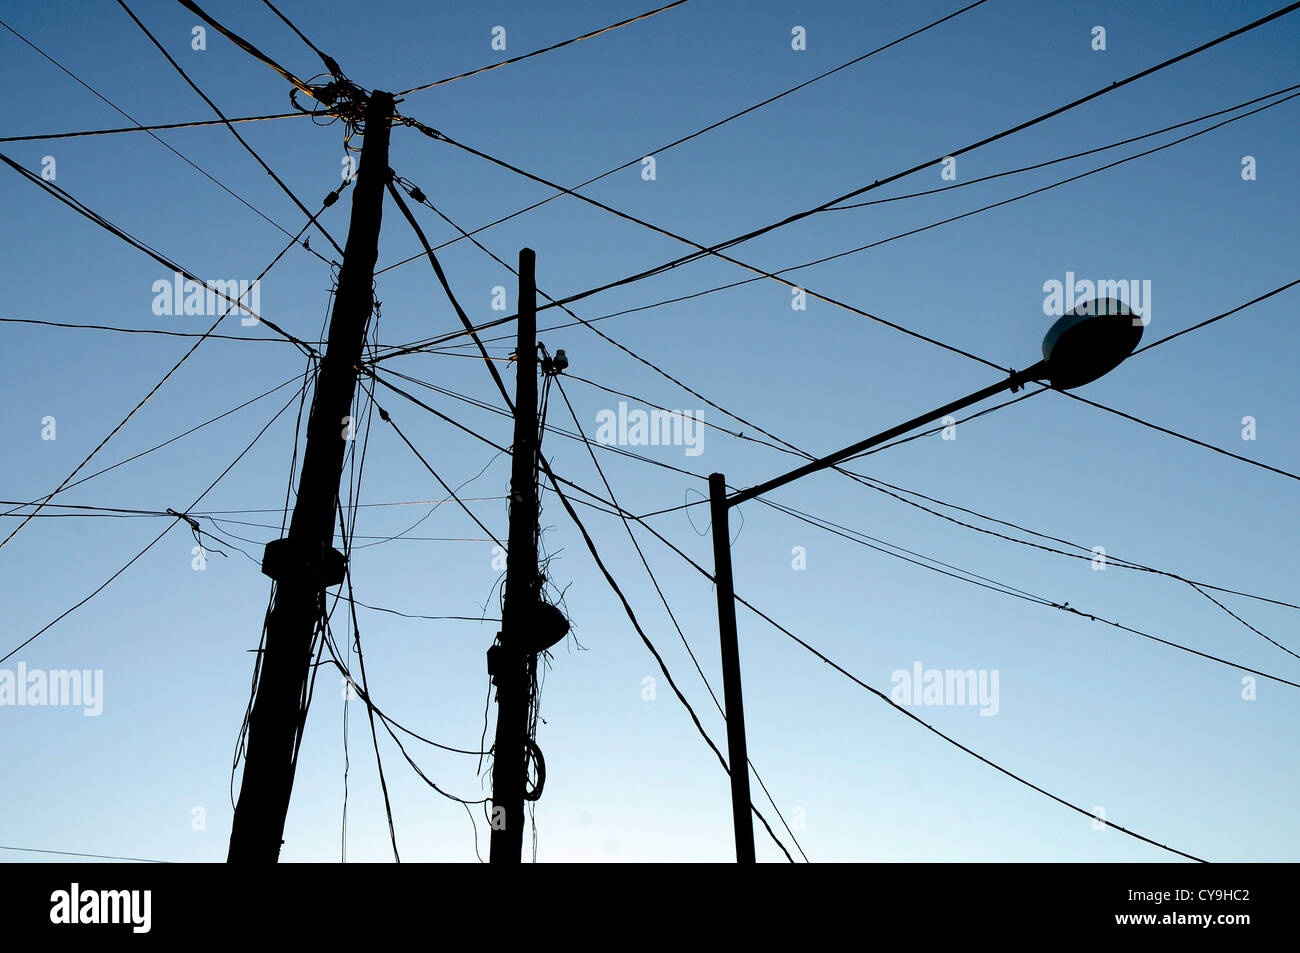 silhouette of obsolete electric cables ELECTRICITY power - Stock Image